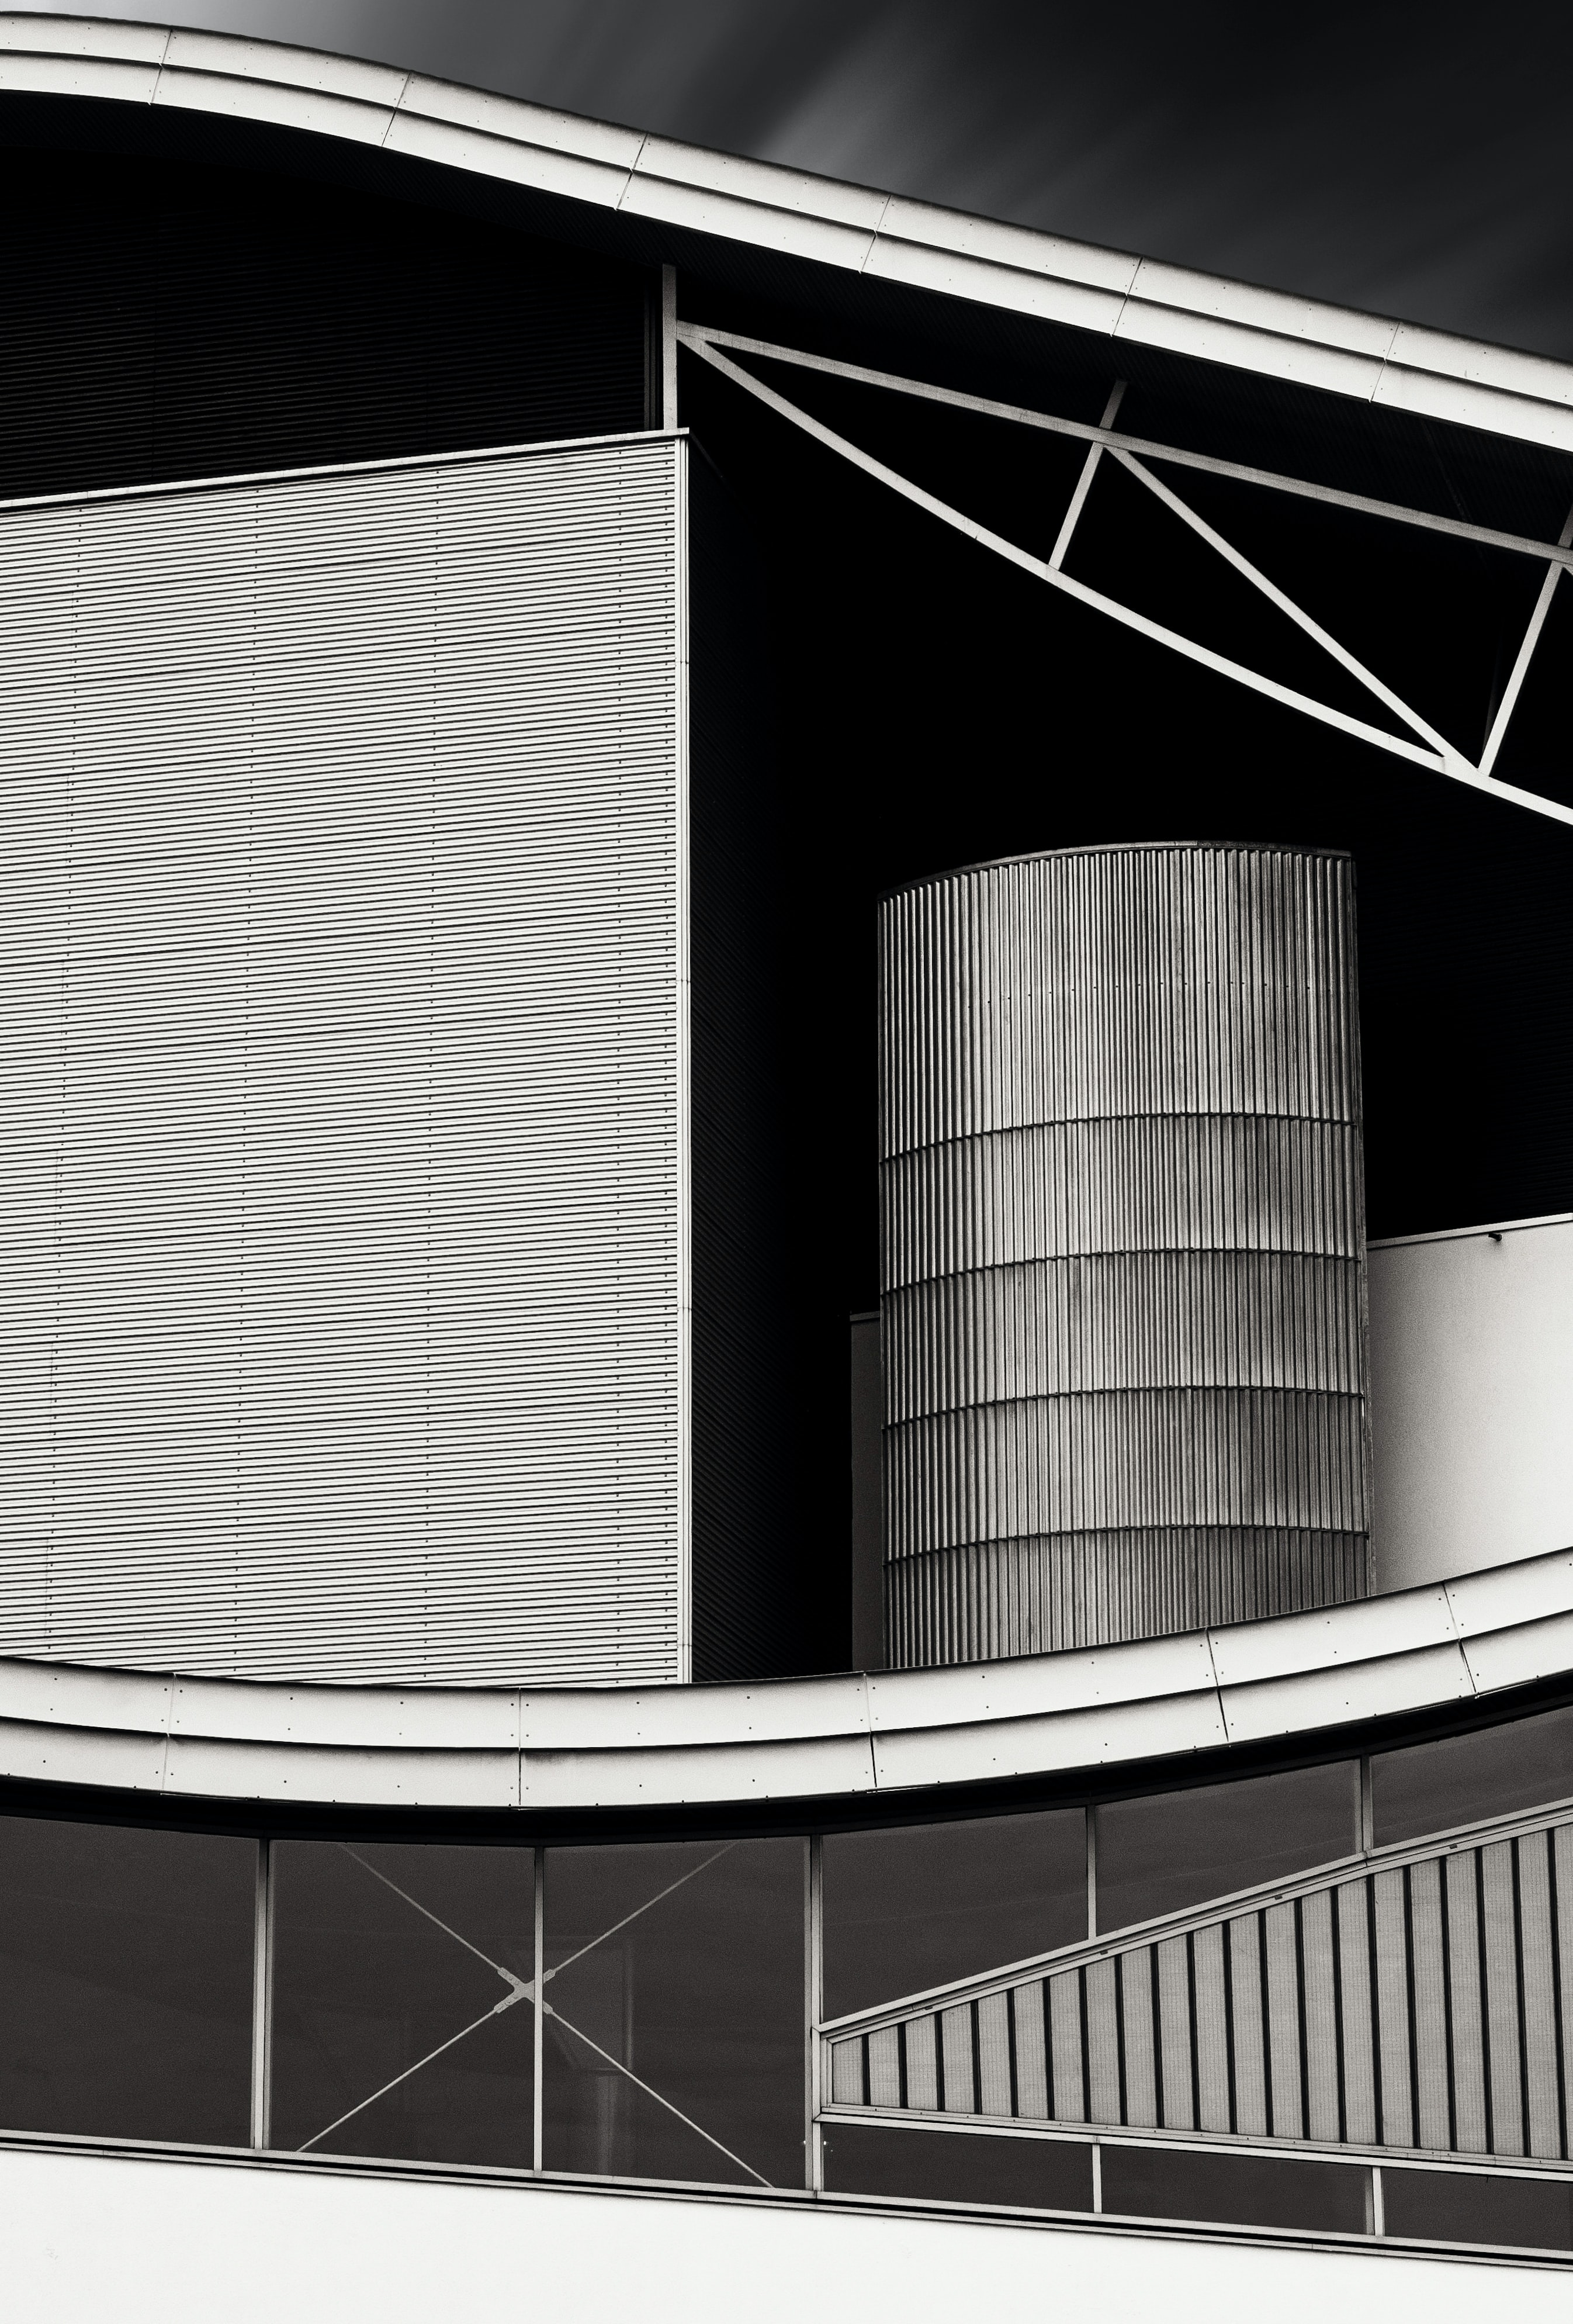 Black and white shot of modern abstract urban building architecture